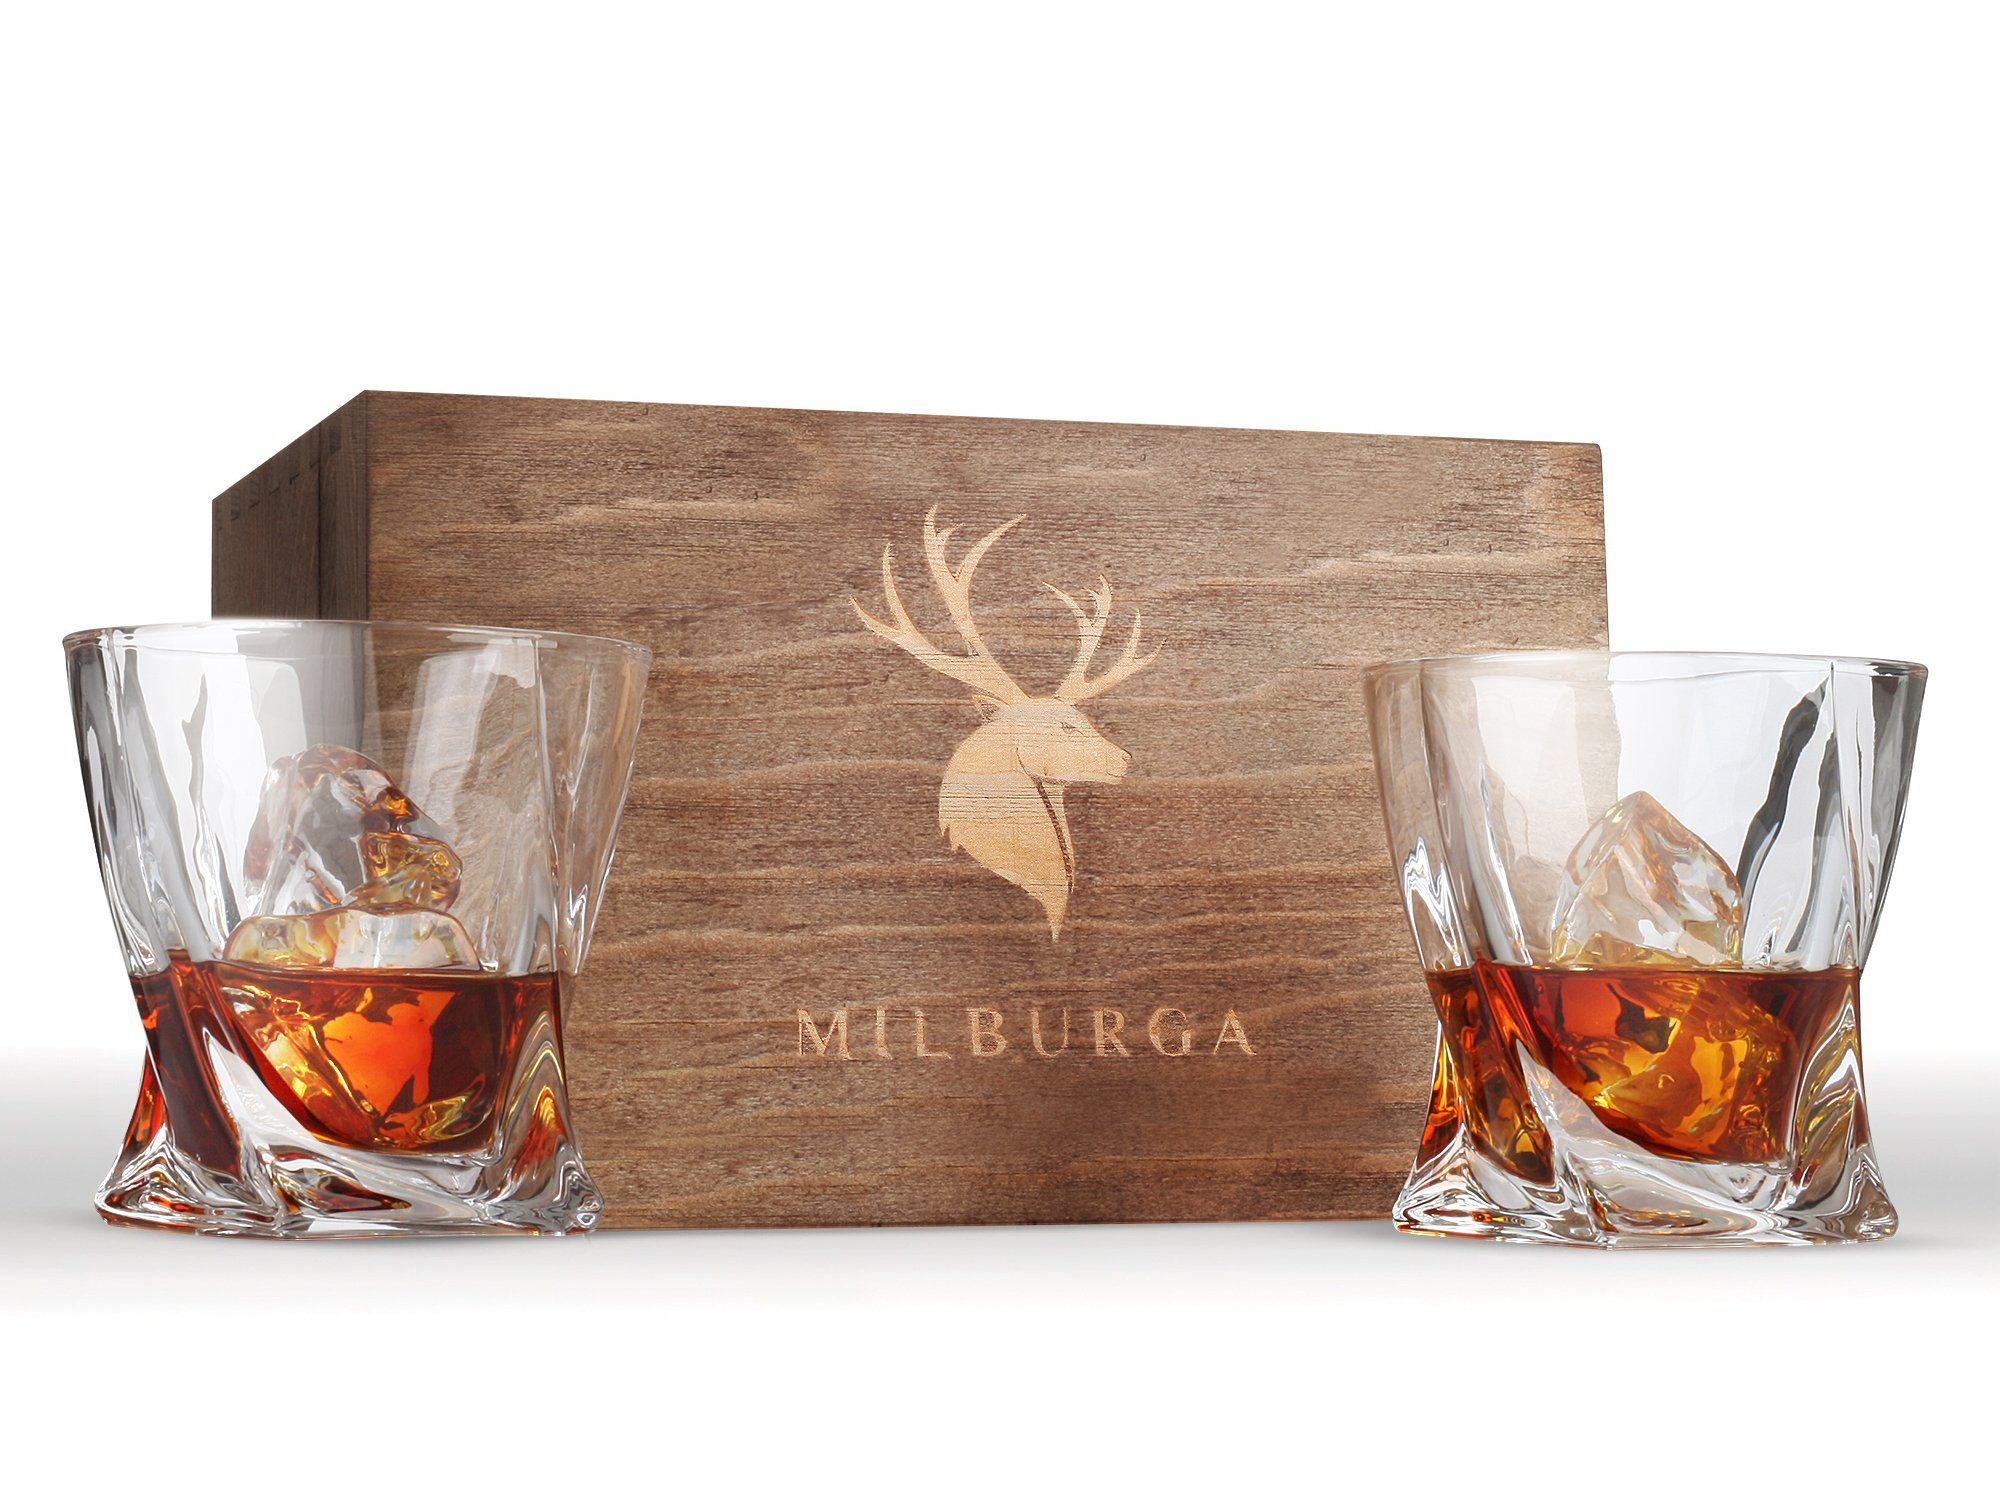 Premium Quality Twist Whiskey Glasses Set of 2 in Hand Crafted Wooden Box - Lead-Free Crystal Old Fashioned Tasting Tumblers For Scotch, Whisky, Liquor, Bourbon 10 oz. Luxury Gift Set For Men or Women